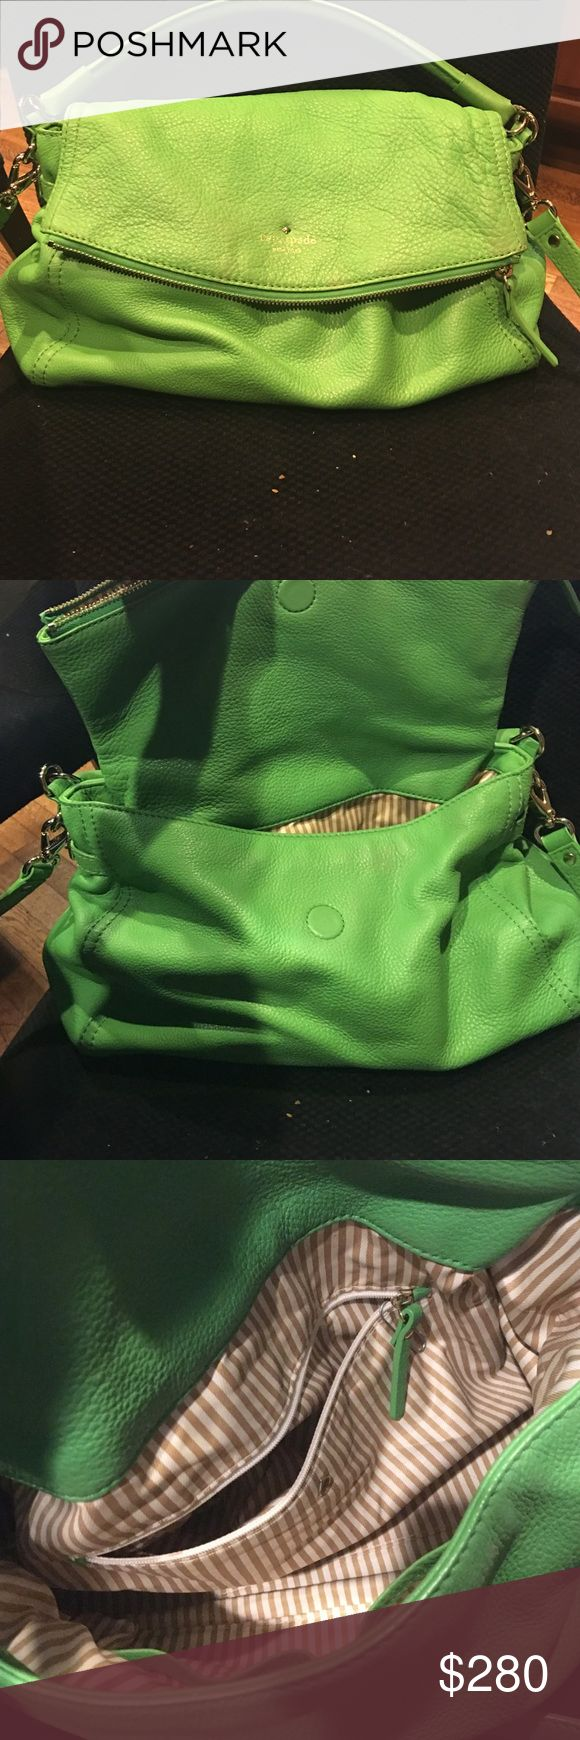 Kate spade bag SALE Kate Spade cobble hill Marsala. Mint condition. Green! Cross body with a secure zippered flap. kate spade Bags Shoulder Bags